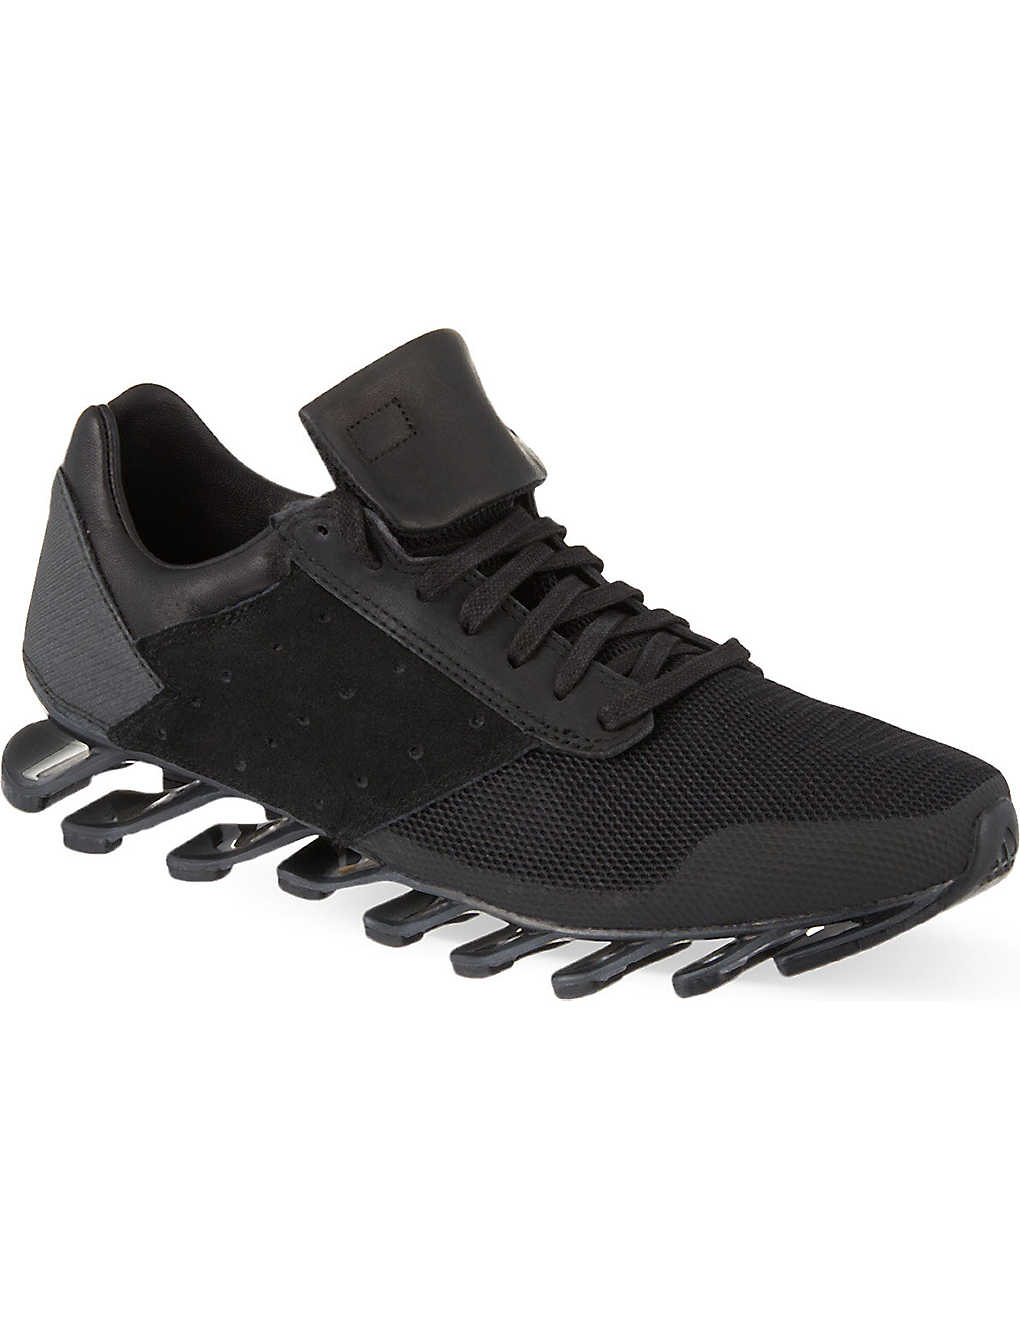 best service 74a9b 107a9 ADIDAS - Rick Owens X Adidas Springblade low trainers ...